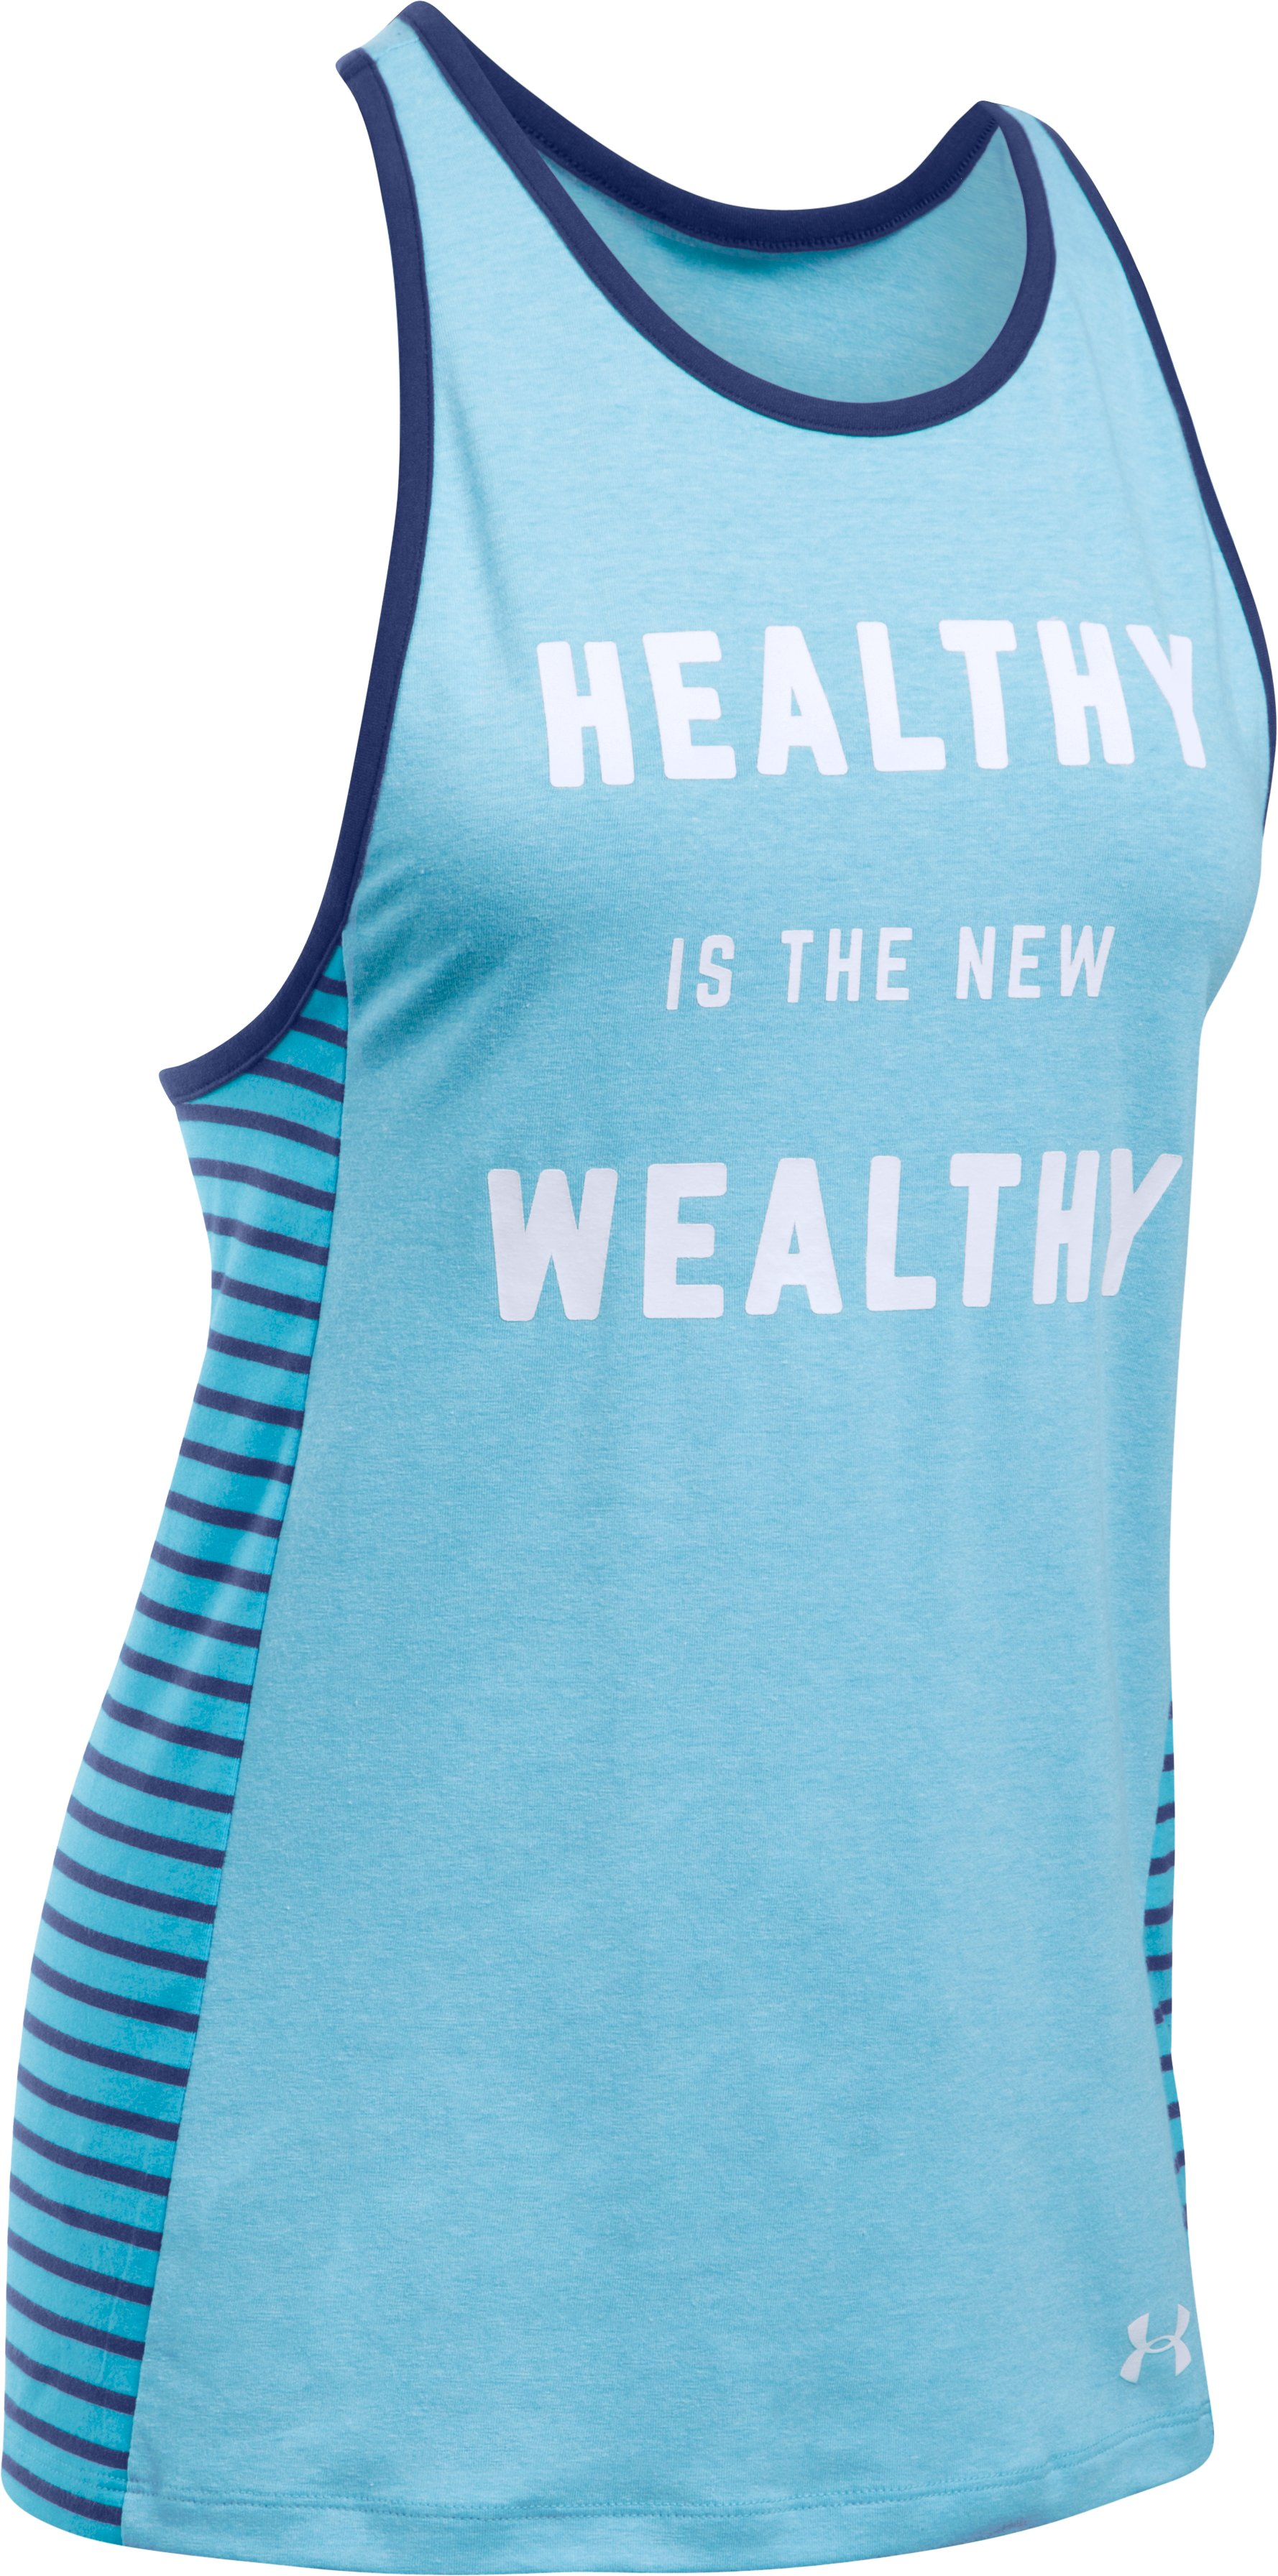 Women's UA Rest Day Healthy Wealthy Tank, ISLAND BLUES LIGHT HEATHER, undefined